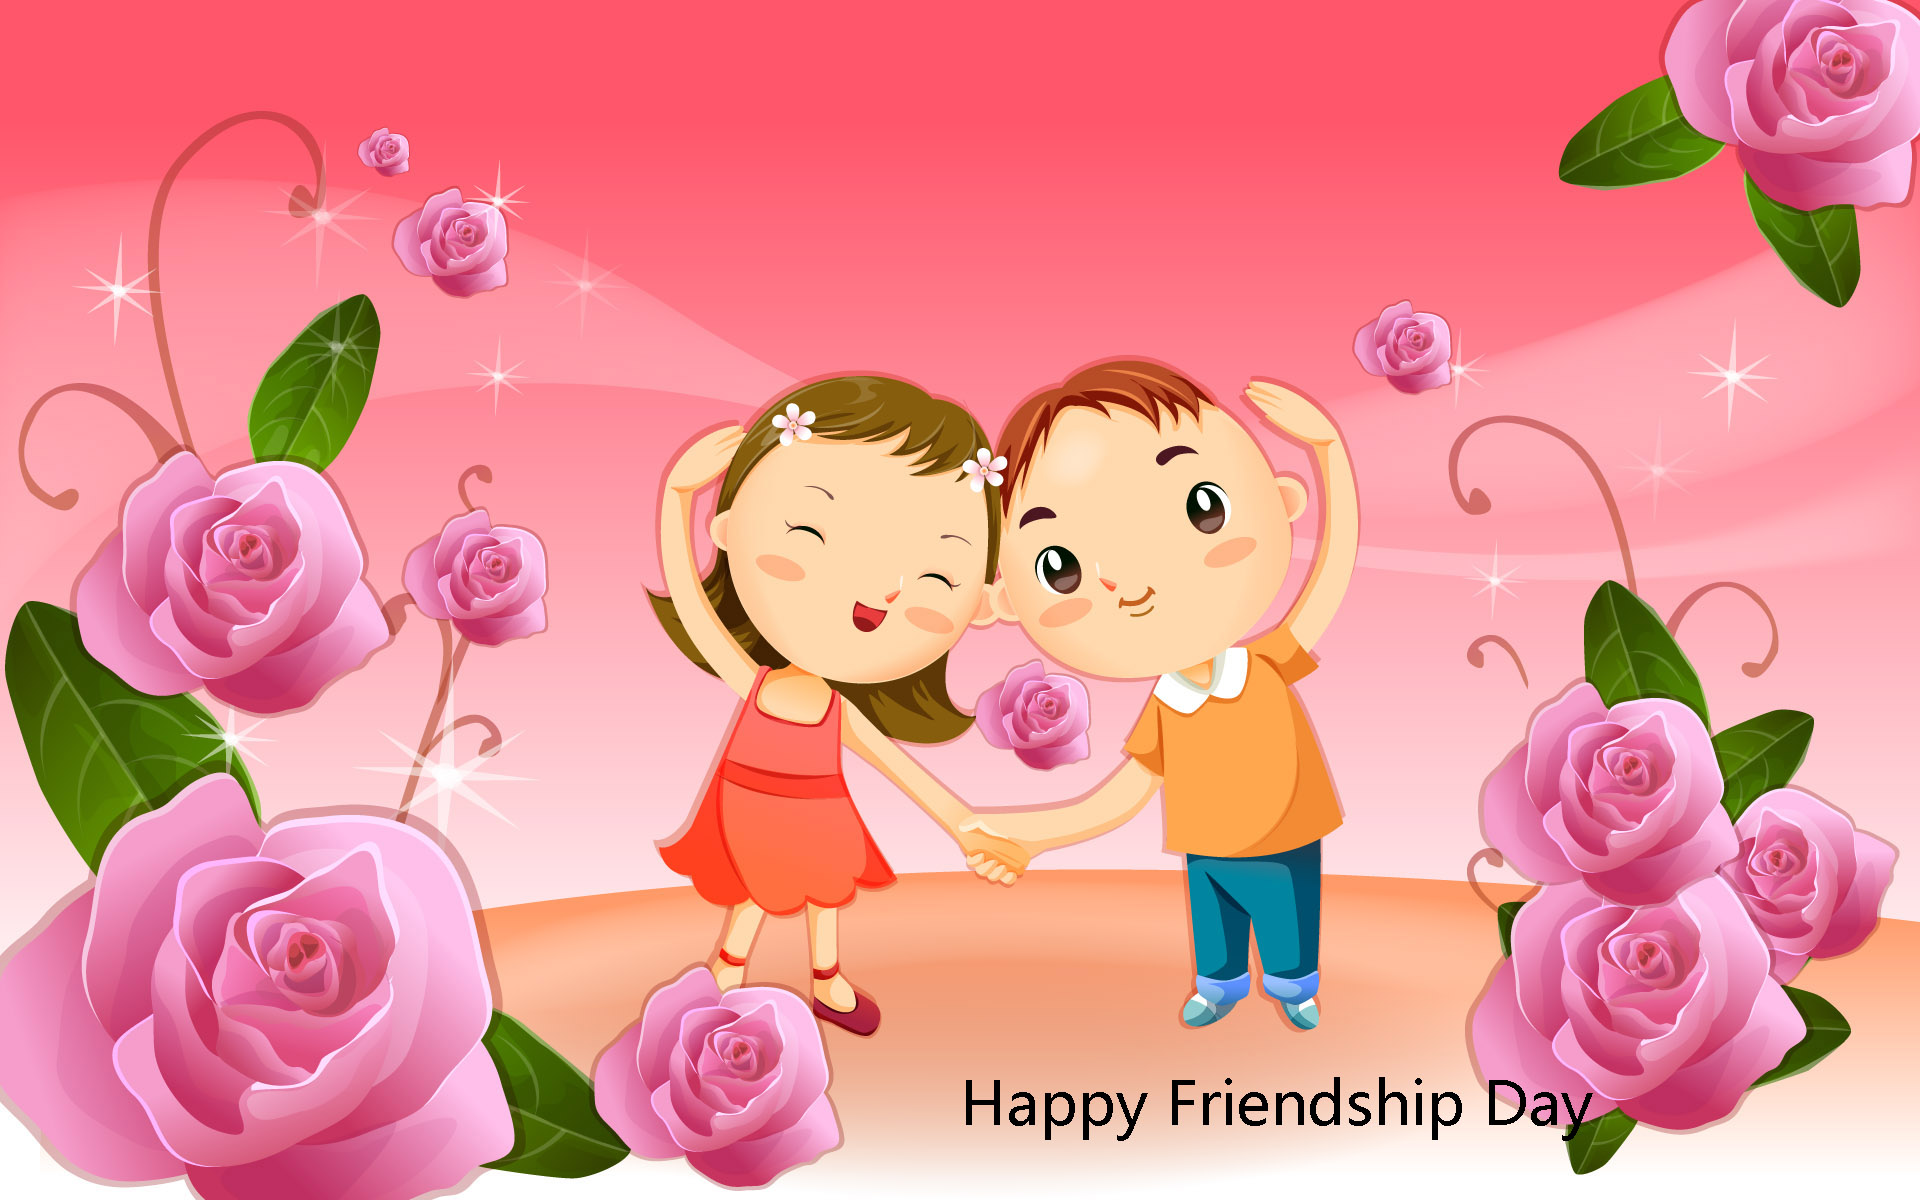 Happy Friendship Day Greeting Free Images